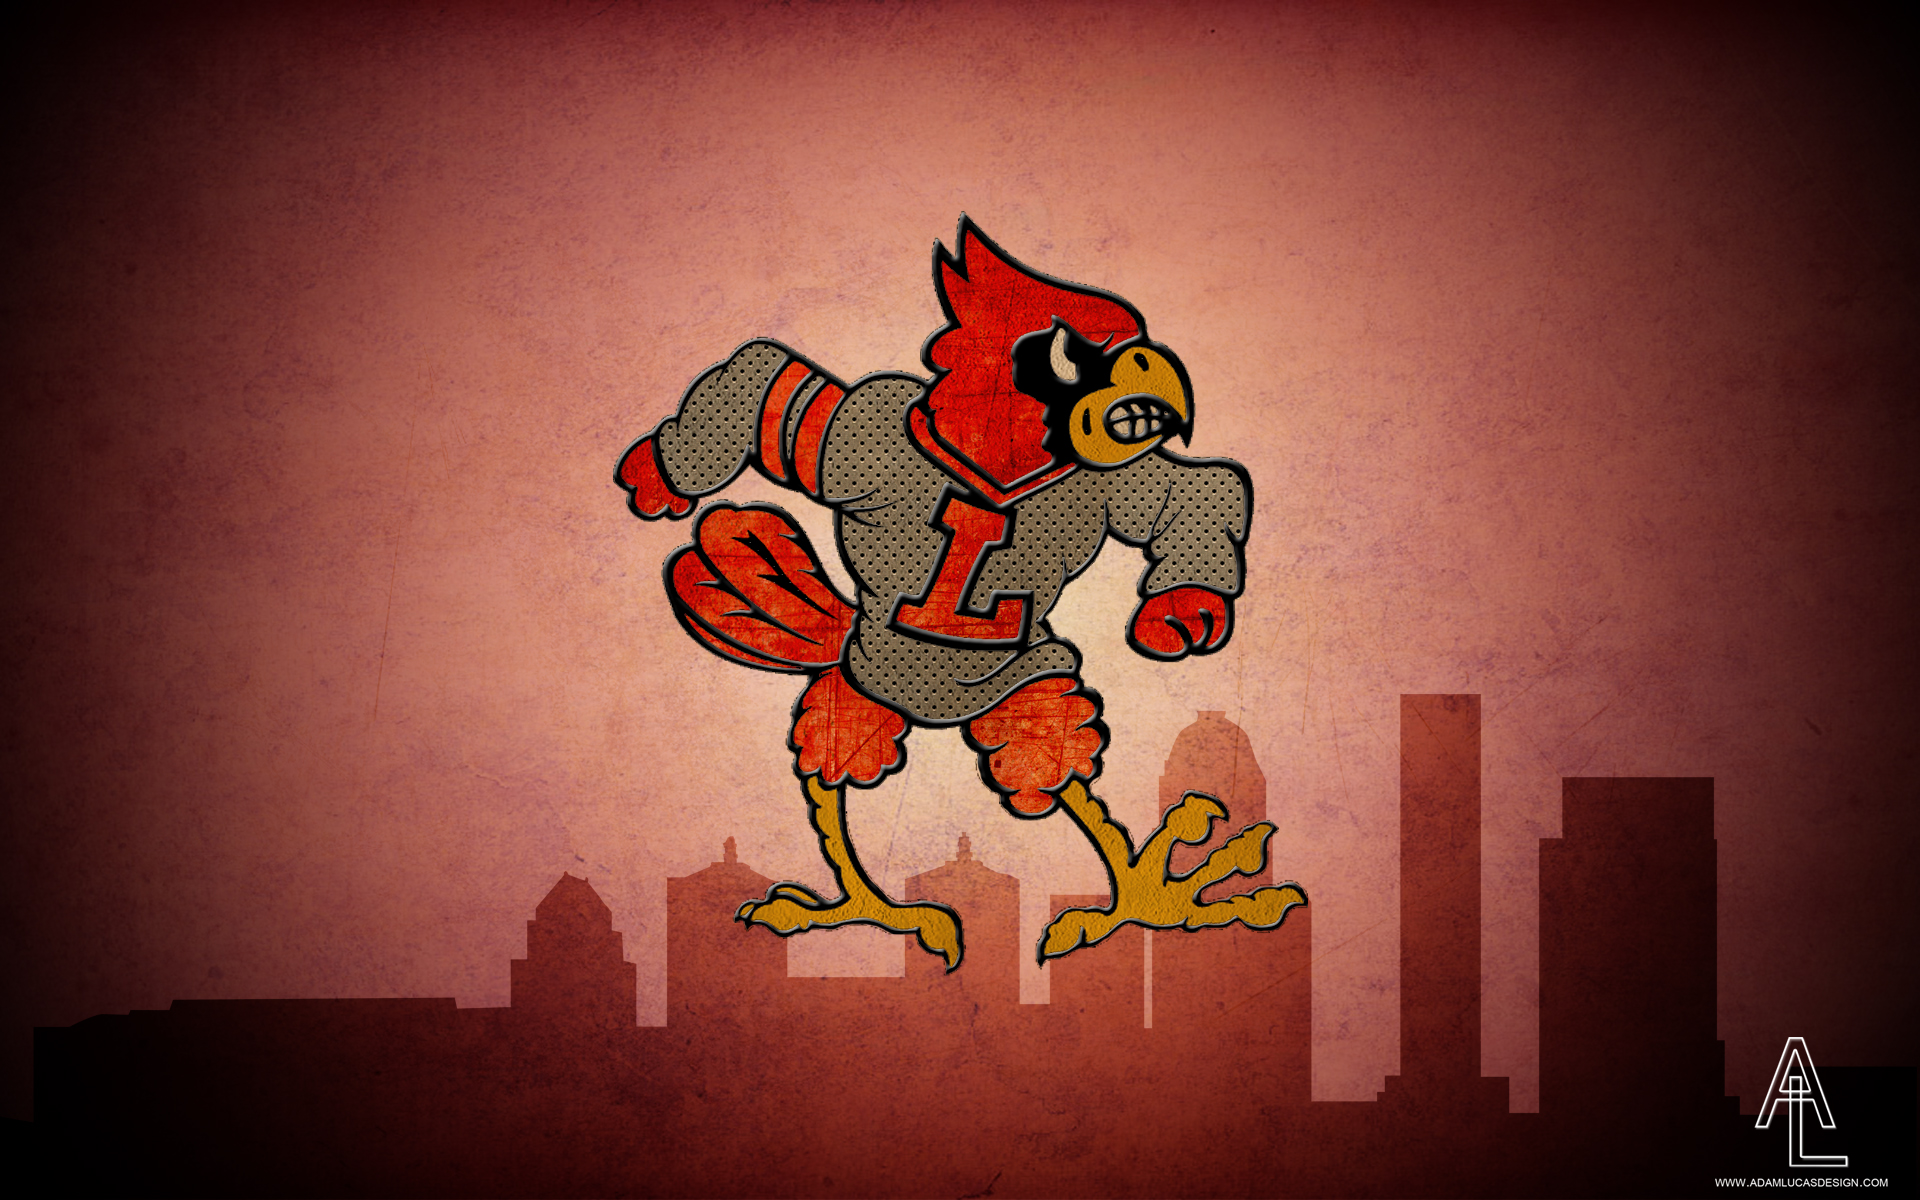 Louisville Cards Background